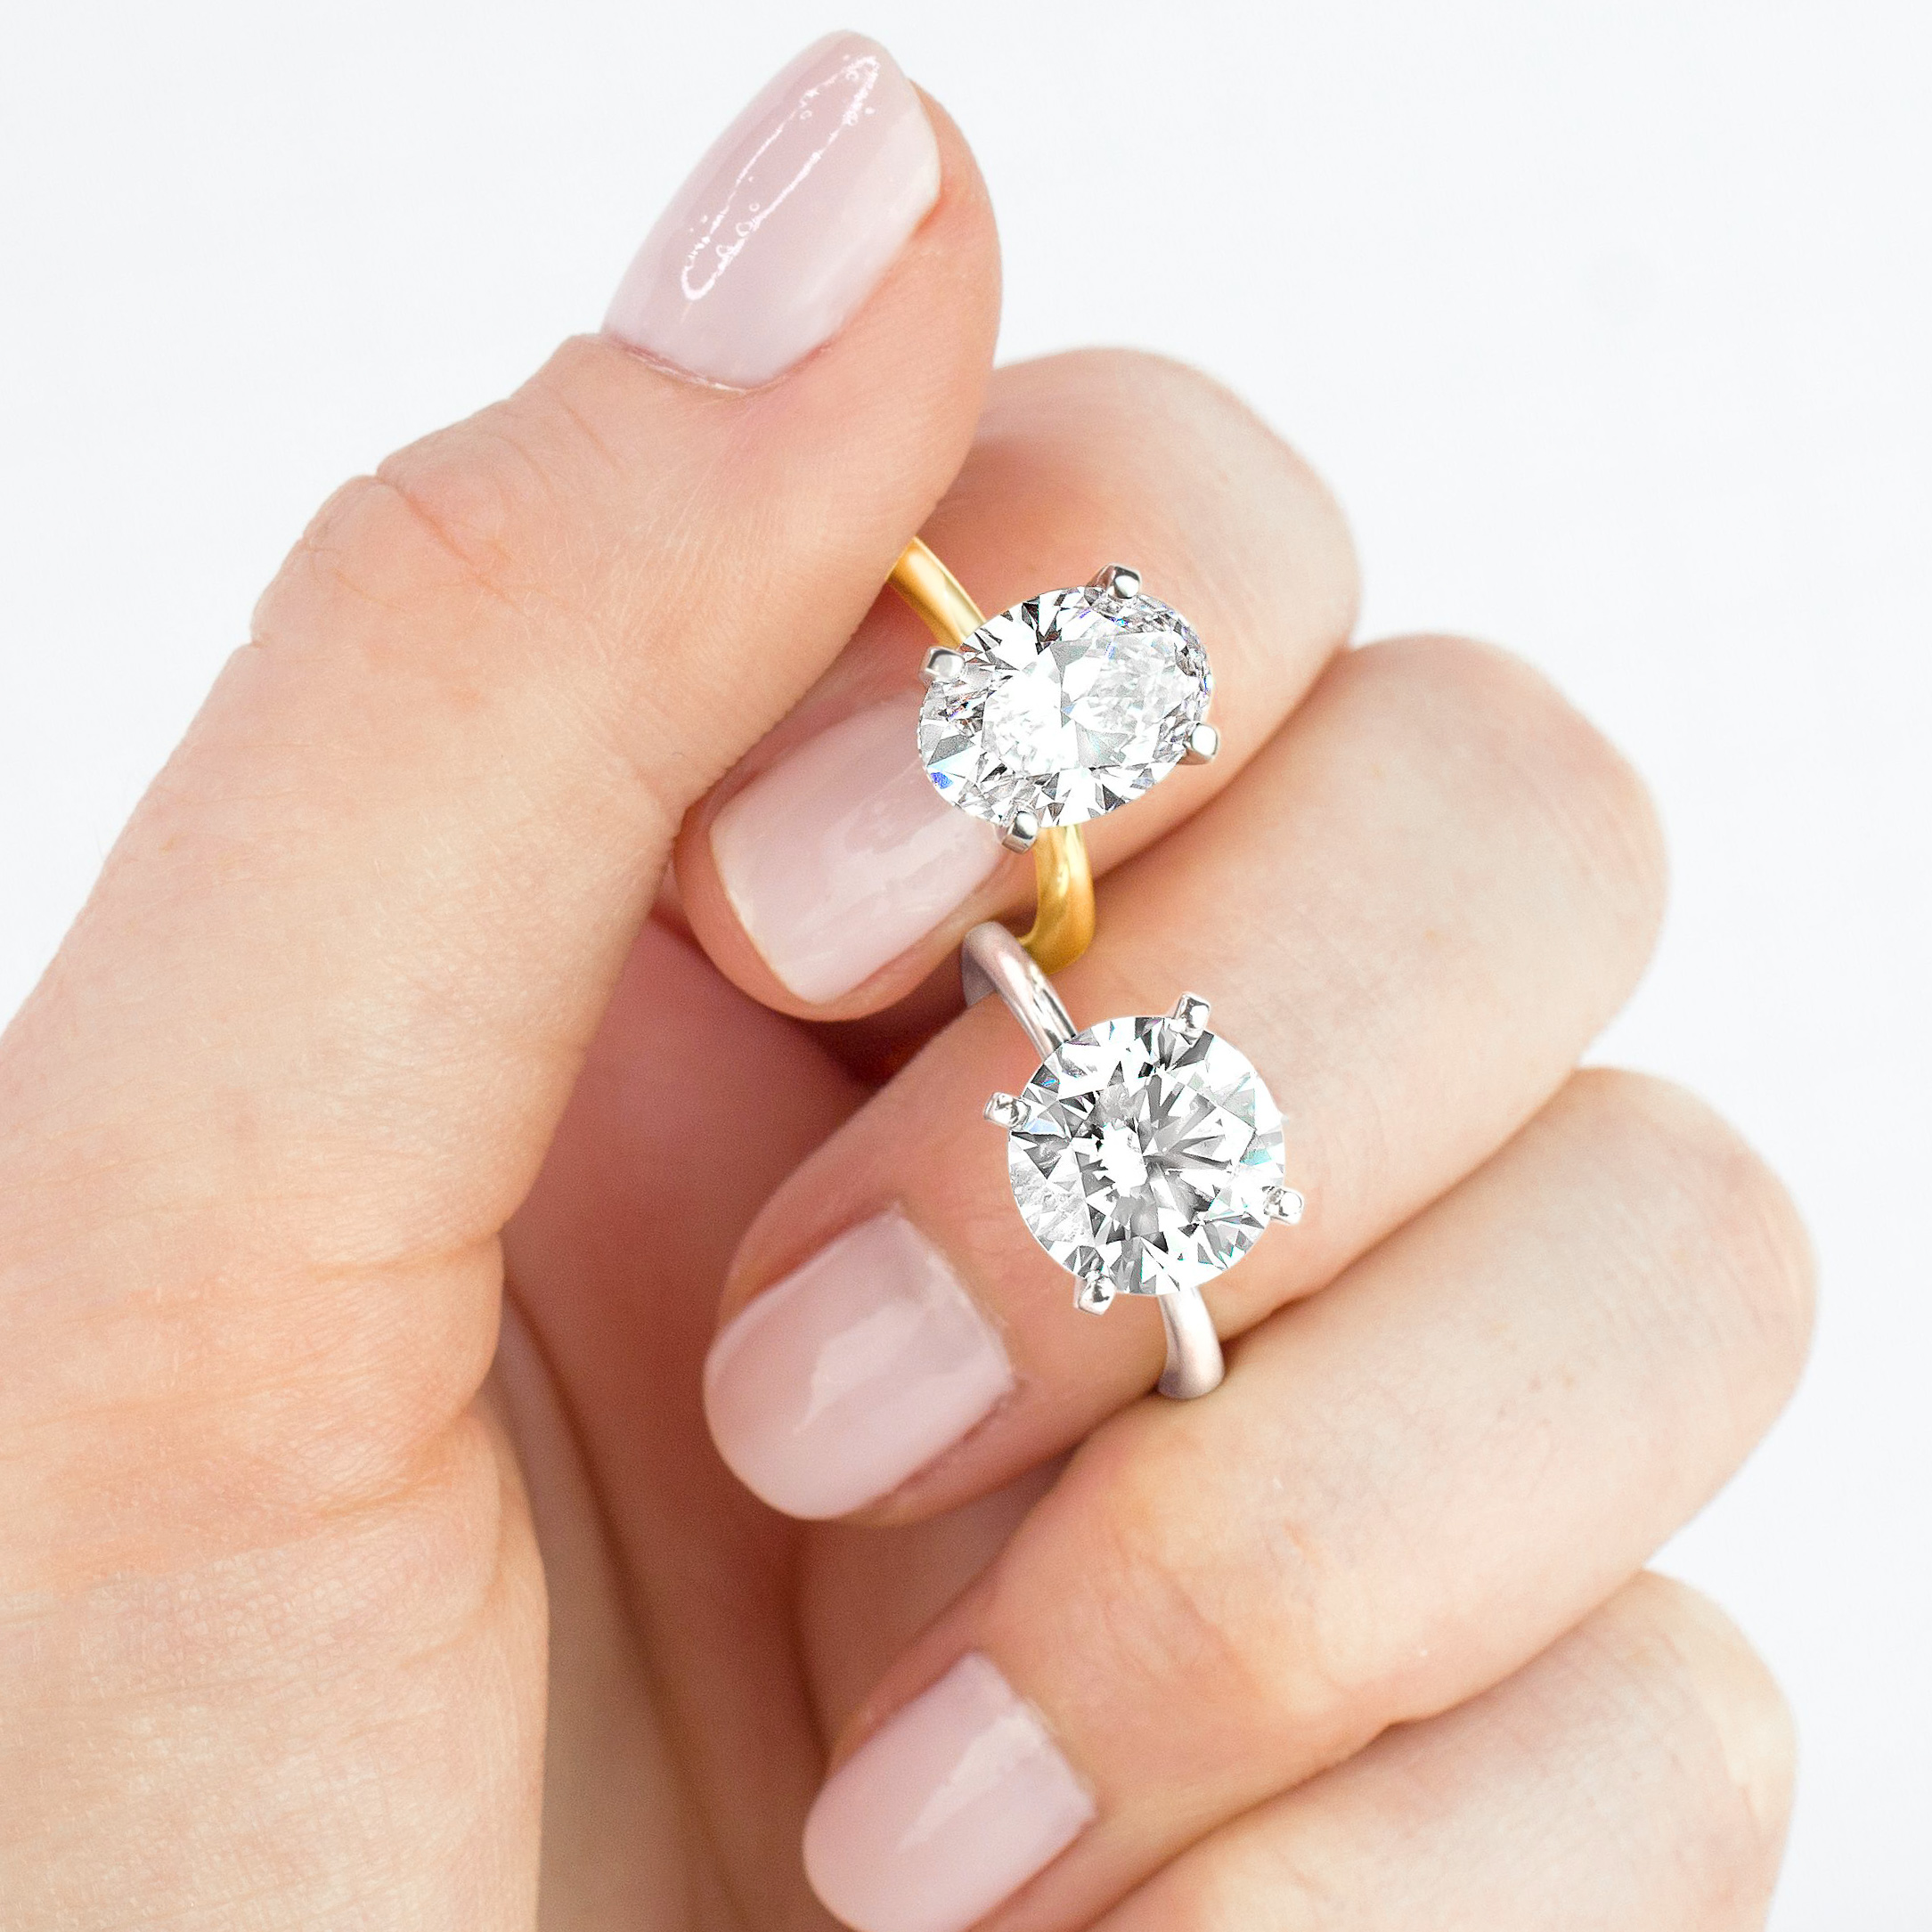 20190523-YG-WG-four-prong-petite-comfort-fit-ER-round-oval-diamond-model-on-hand-solitaire-classic-mixed-in-house-image.jpg